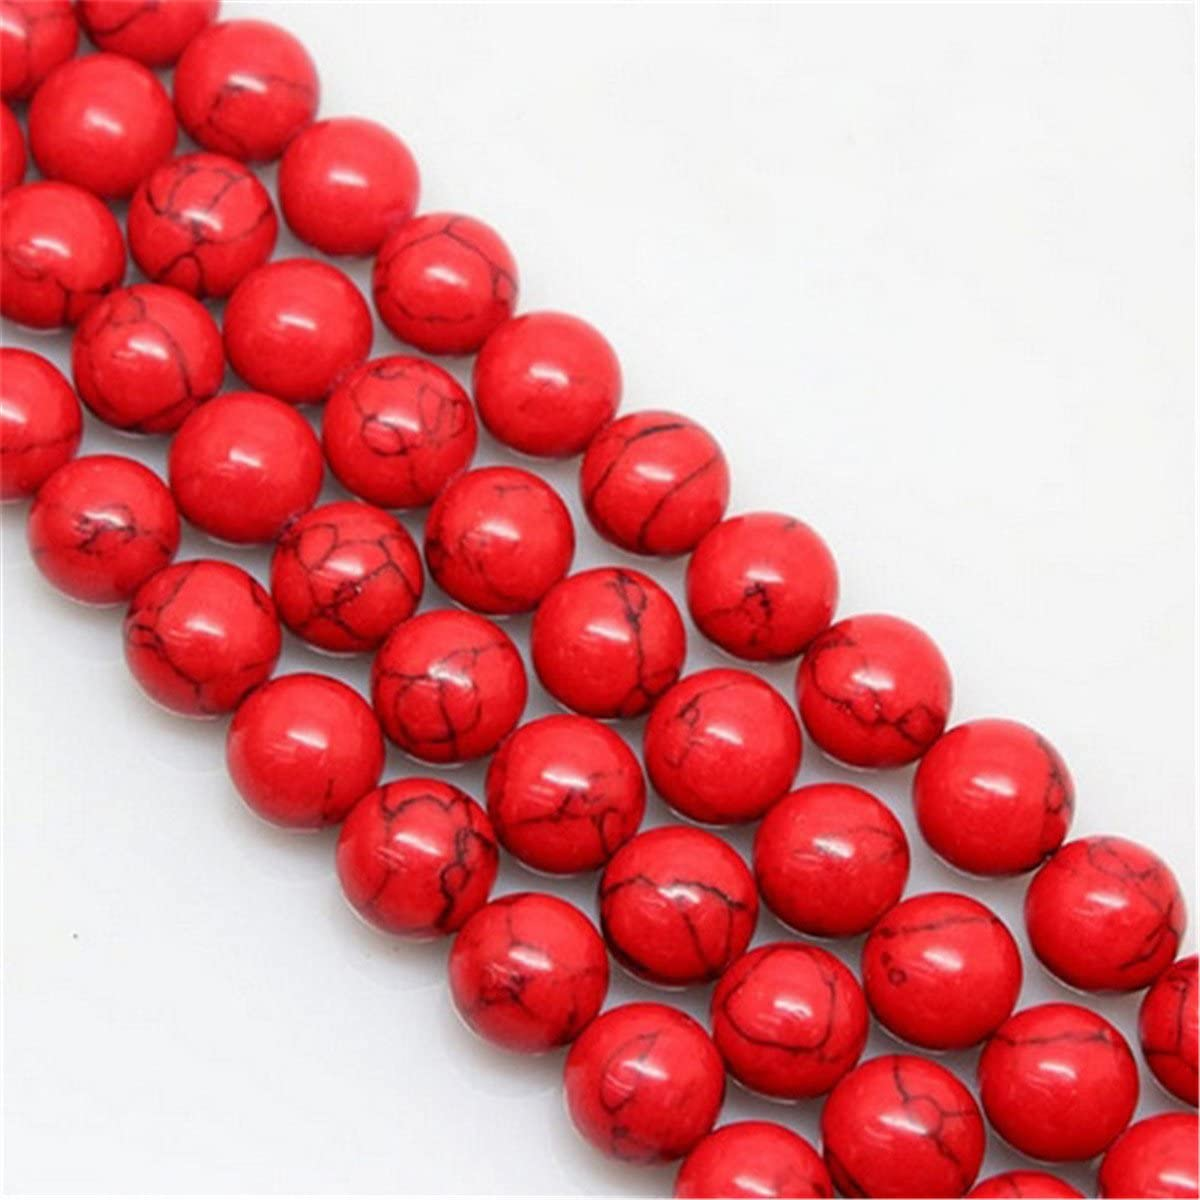 Red GraceAngie 1 Strand Round Smooth Turquoise Gemstone 8mm Loose Beads approx 48pcs Energy Stone Healing Power for Jewelry Making